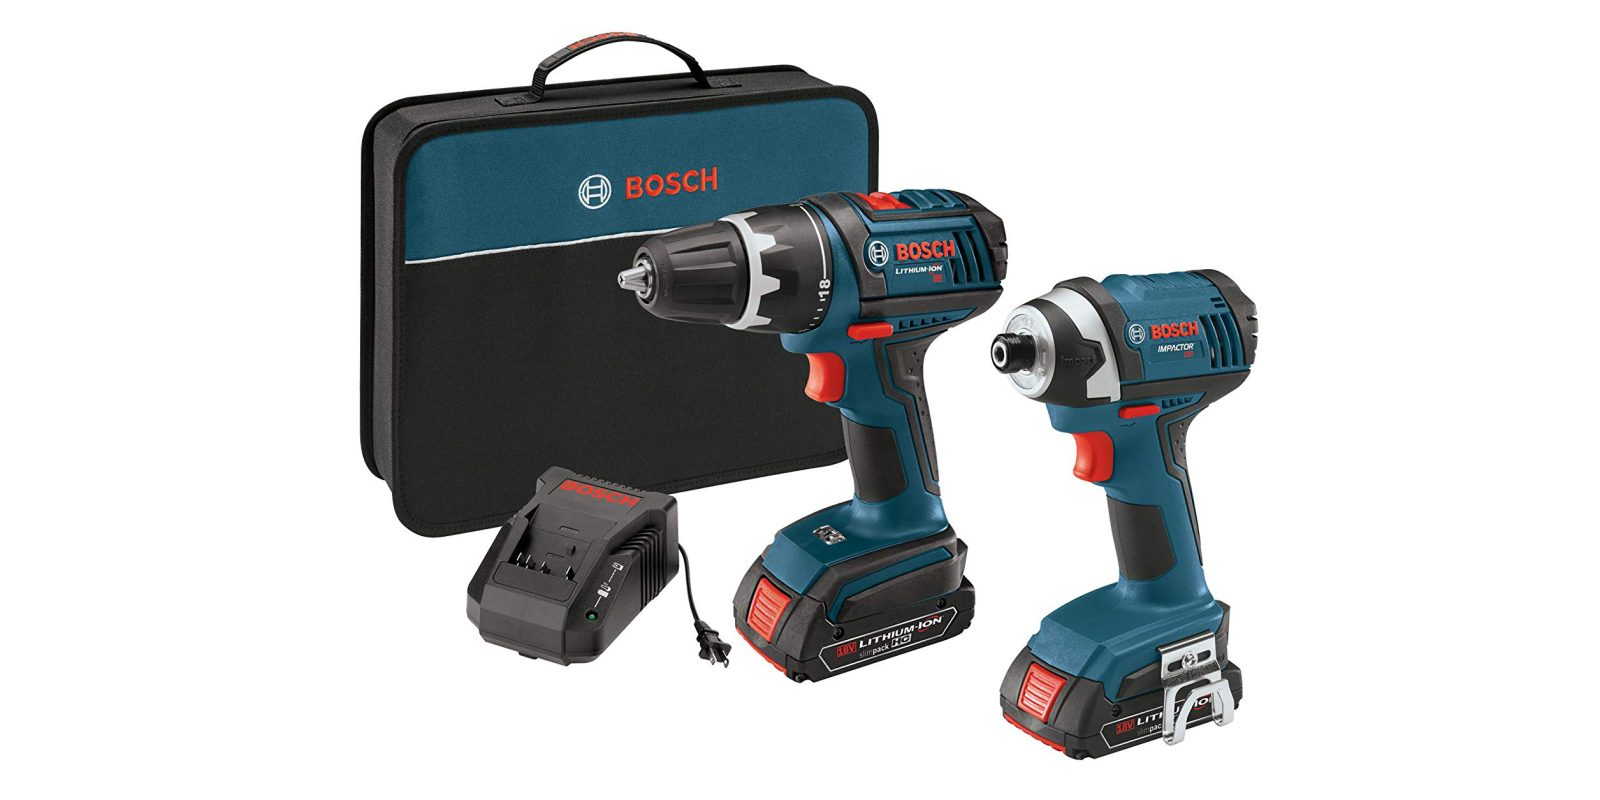 Tackle projects around the house: Bosch 2-tool Combo Kit for $141 (Reg. $200)